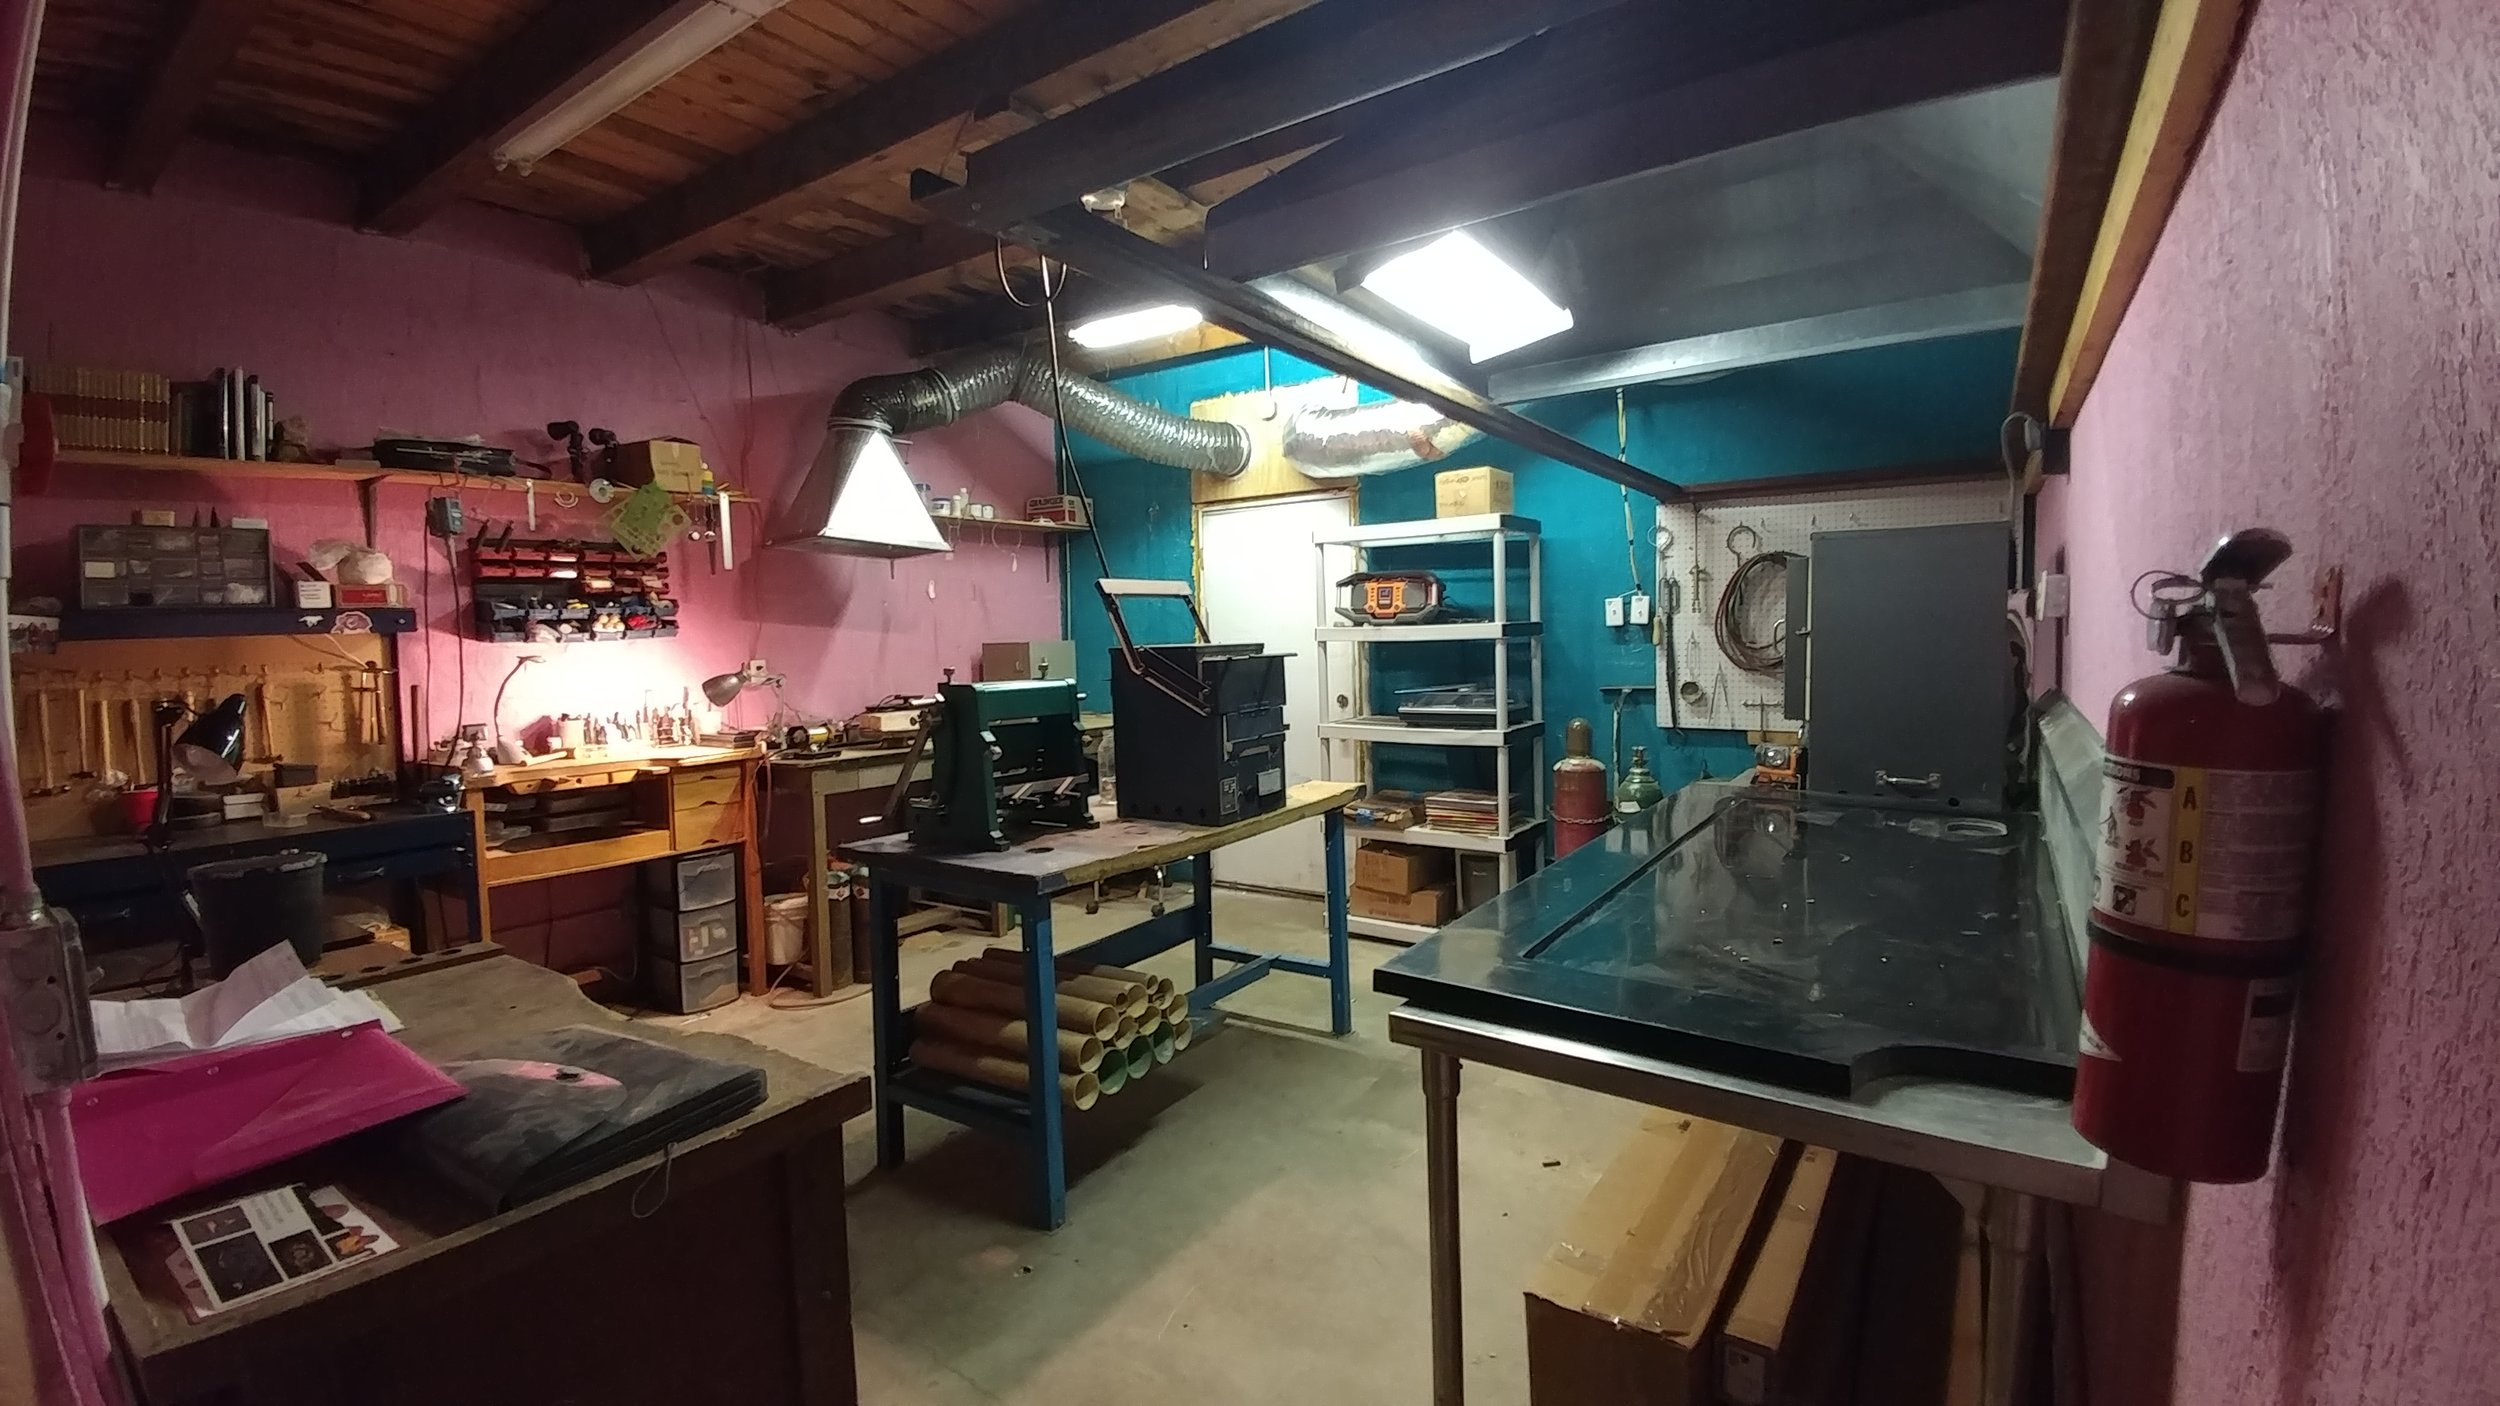 My Studio - Equipped with a lifetime's collection of purchased and inherited tools and machines dedicated to lampwork, metalsmithing, and lapidary. For the first time, I have a studio space to myself organized my way. While I work, I listen to a rotating collection of borrowed records from friends and family on a gifted record player or tune in to the local